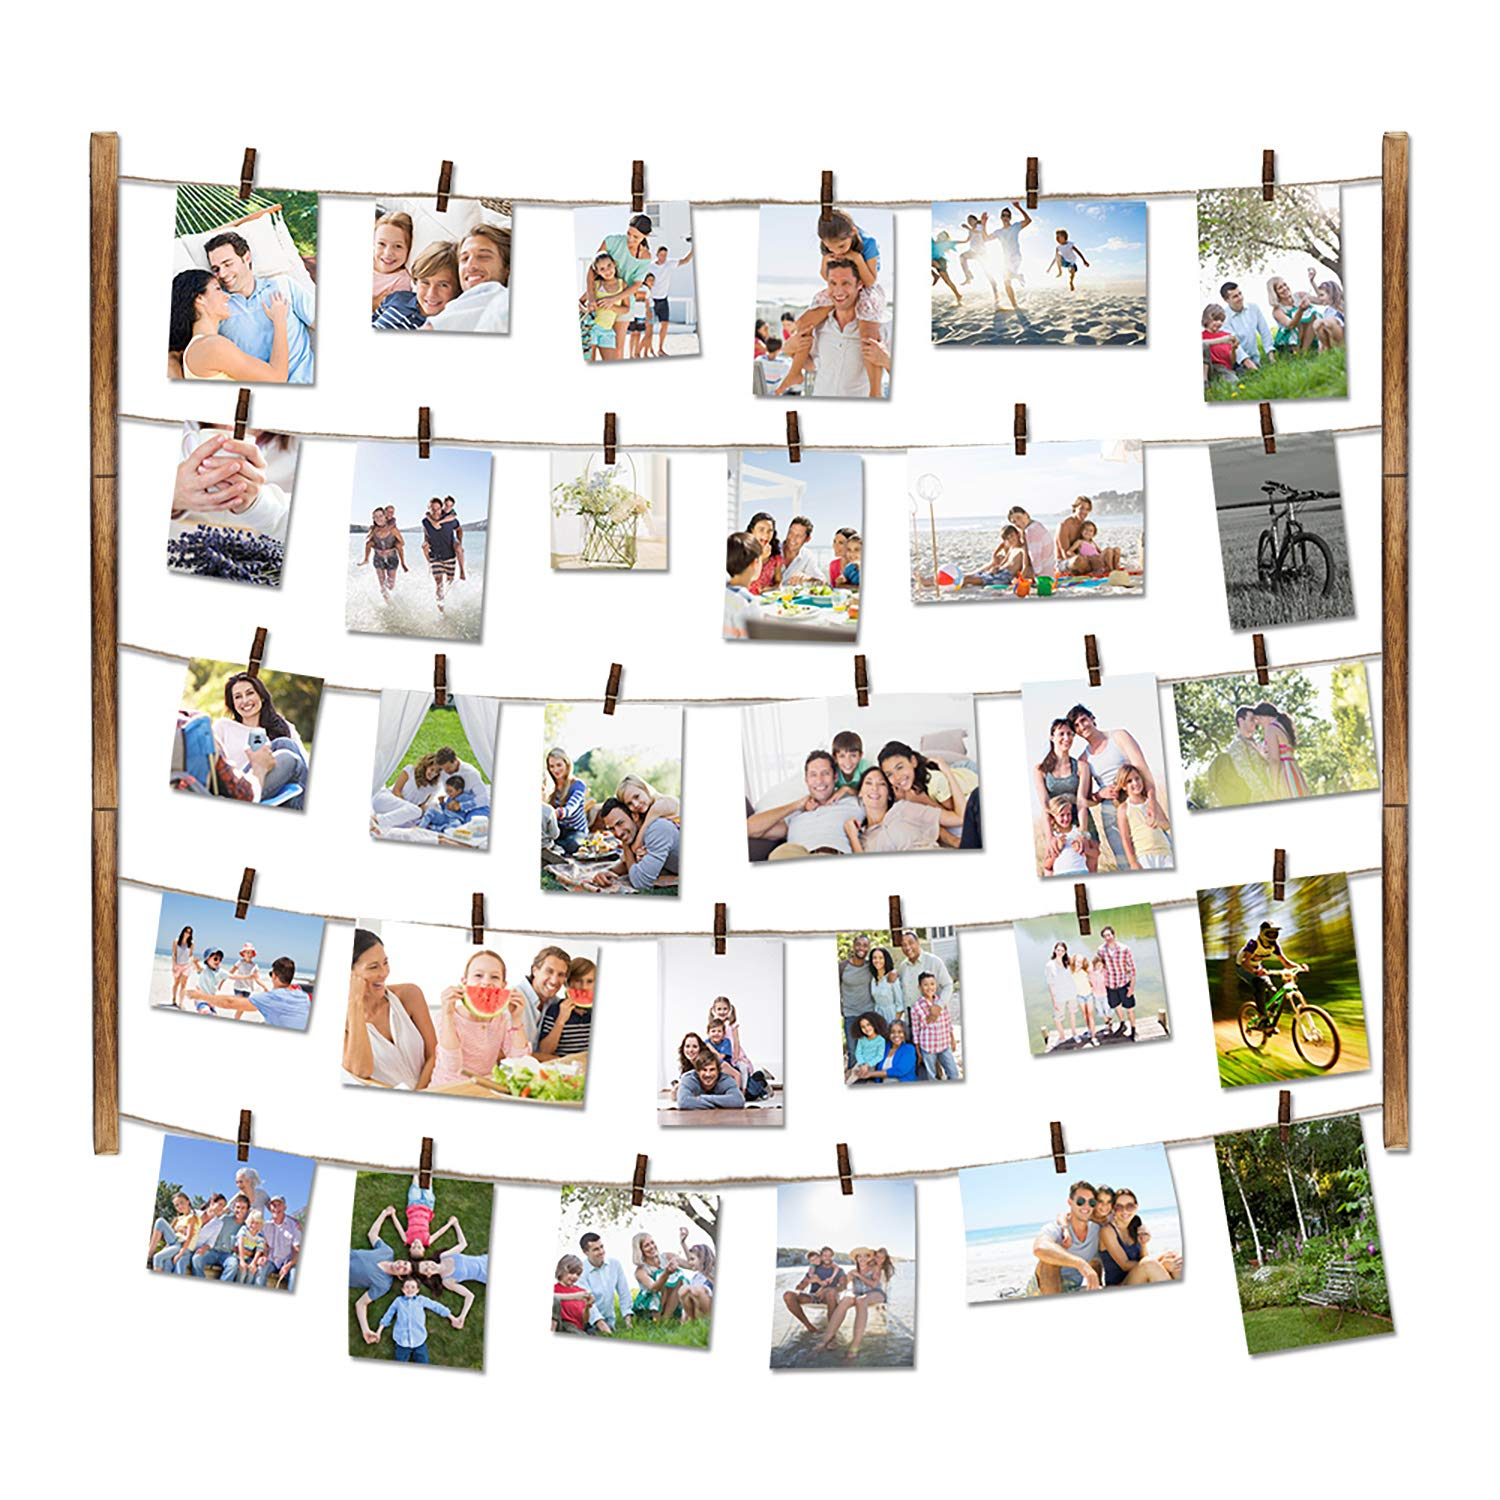 Love-KANKEI Wood Picture Photo Frame for Wall Decor 26×29 inch with 30 Clips and Ajustable Twines Collage Artworks Prints Multi Pictures Organizer and Hanging Display Frames Carbonized Black by Love-KANKEI